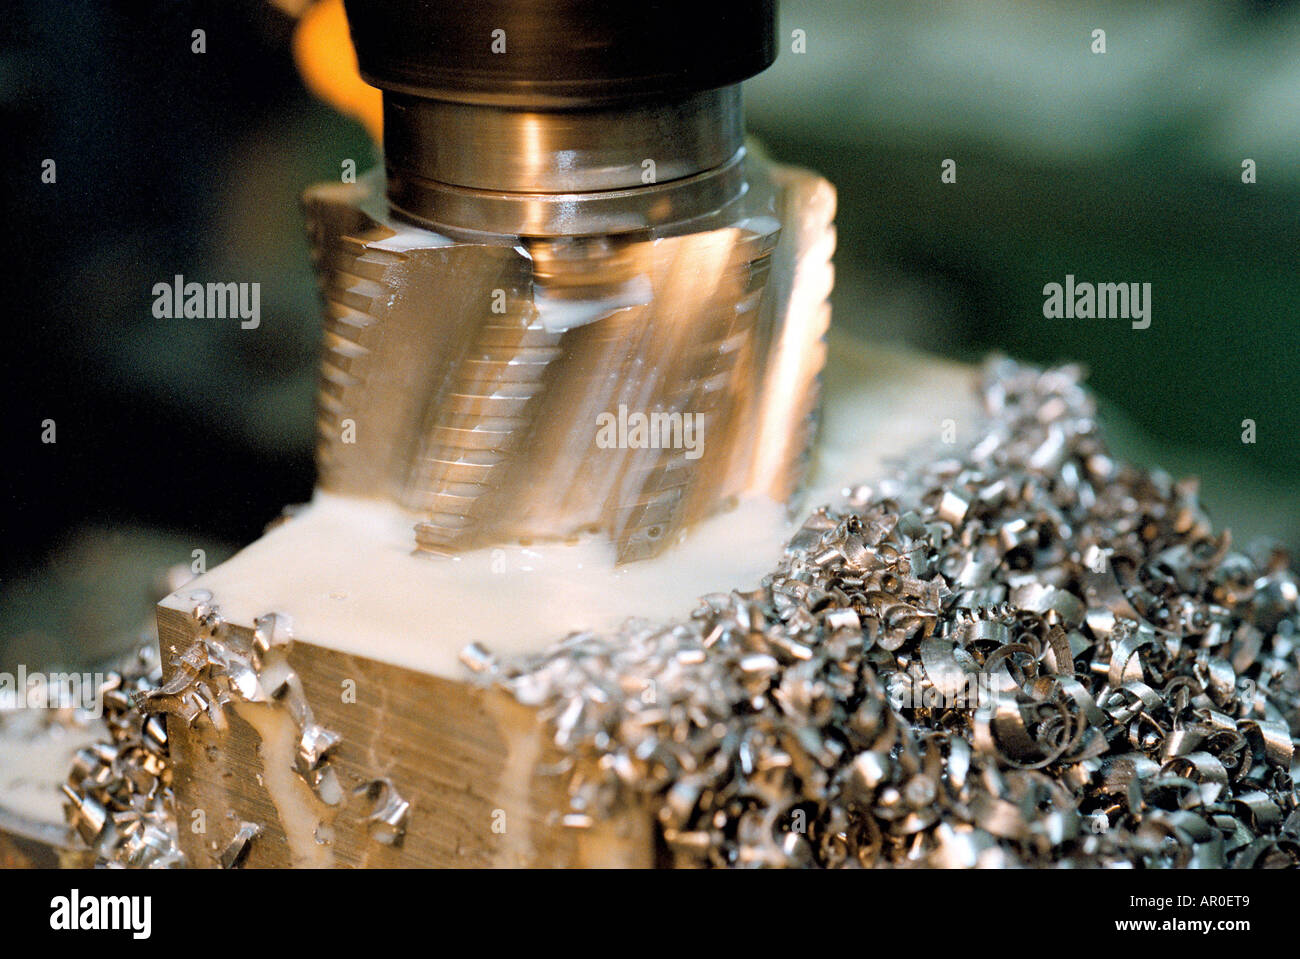 Metal machining. Milling head cutting the surface of a workpiece - Stock Image